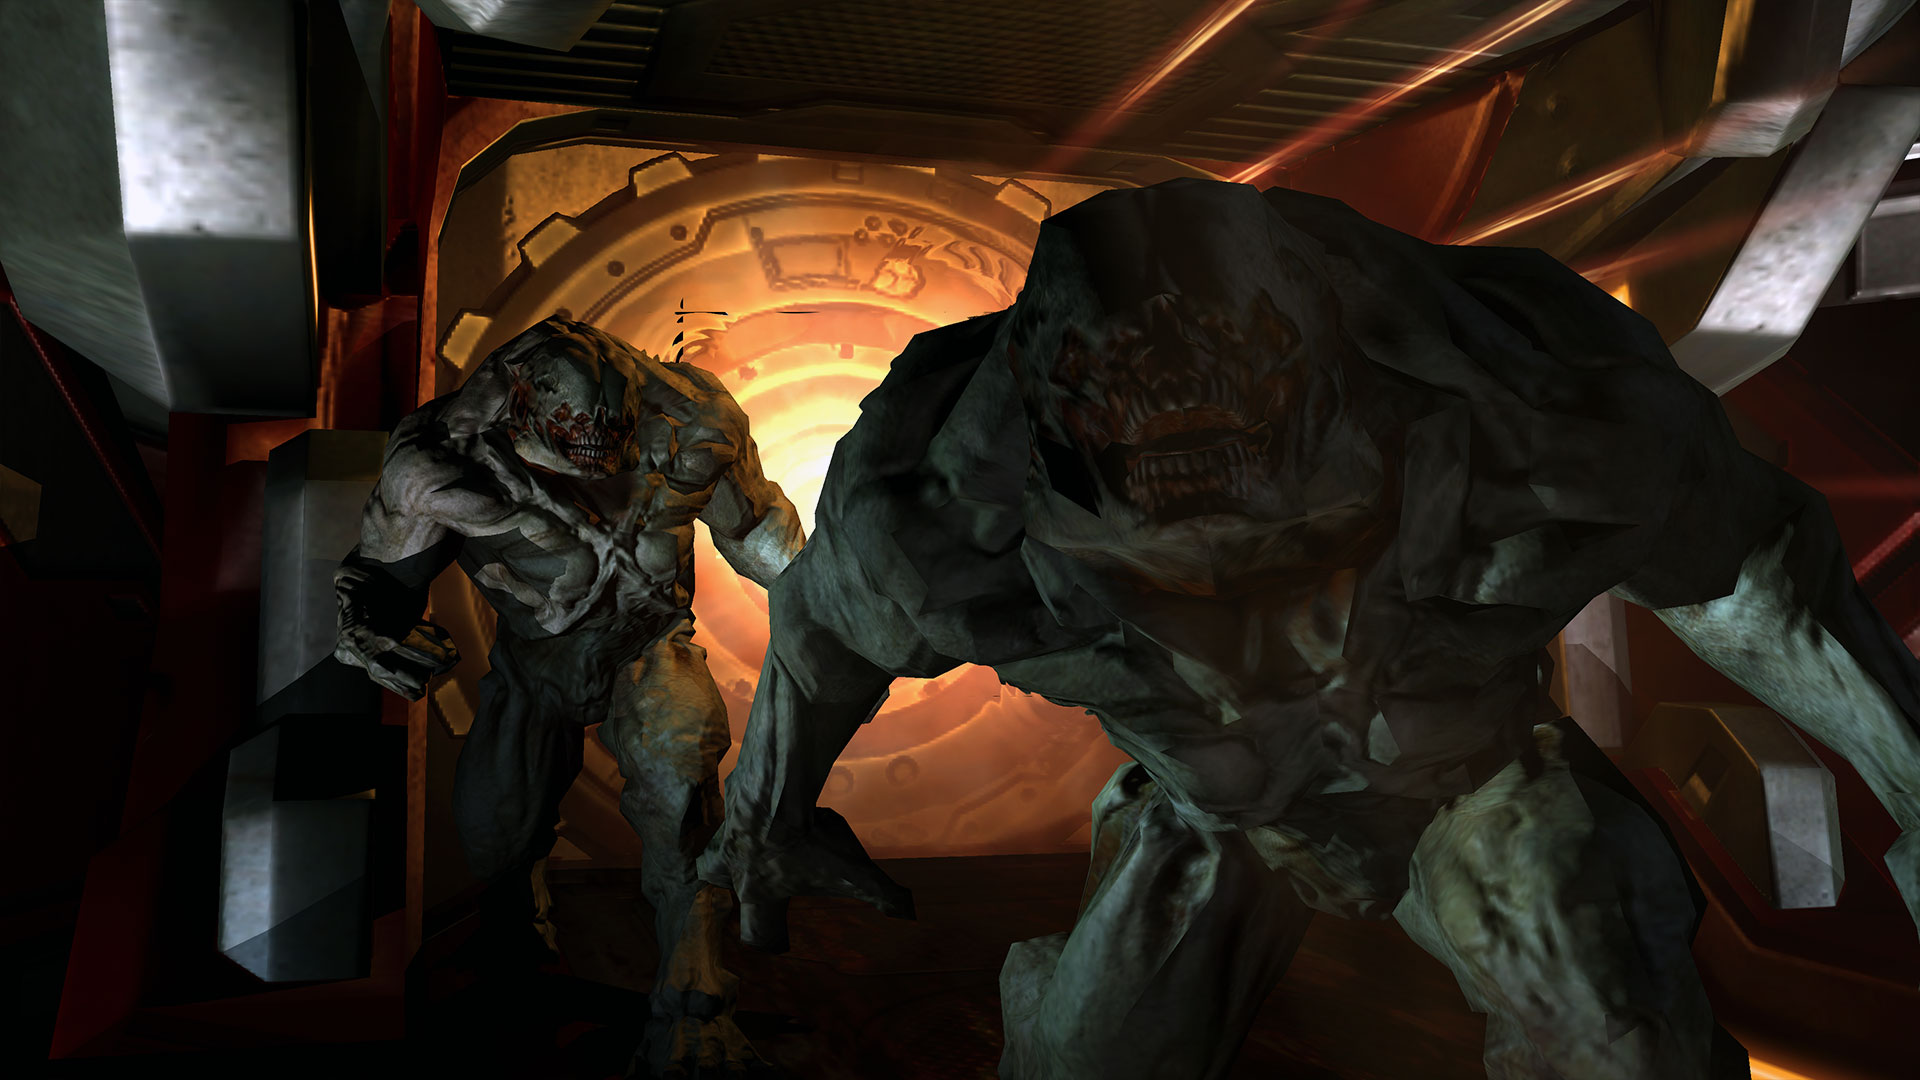 Two Hell Knights in Doom 3